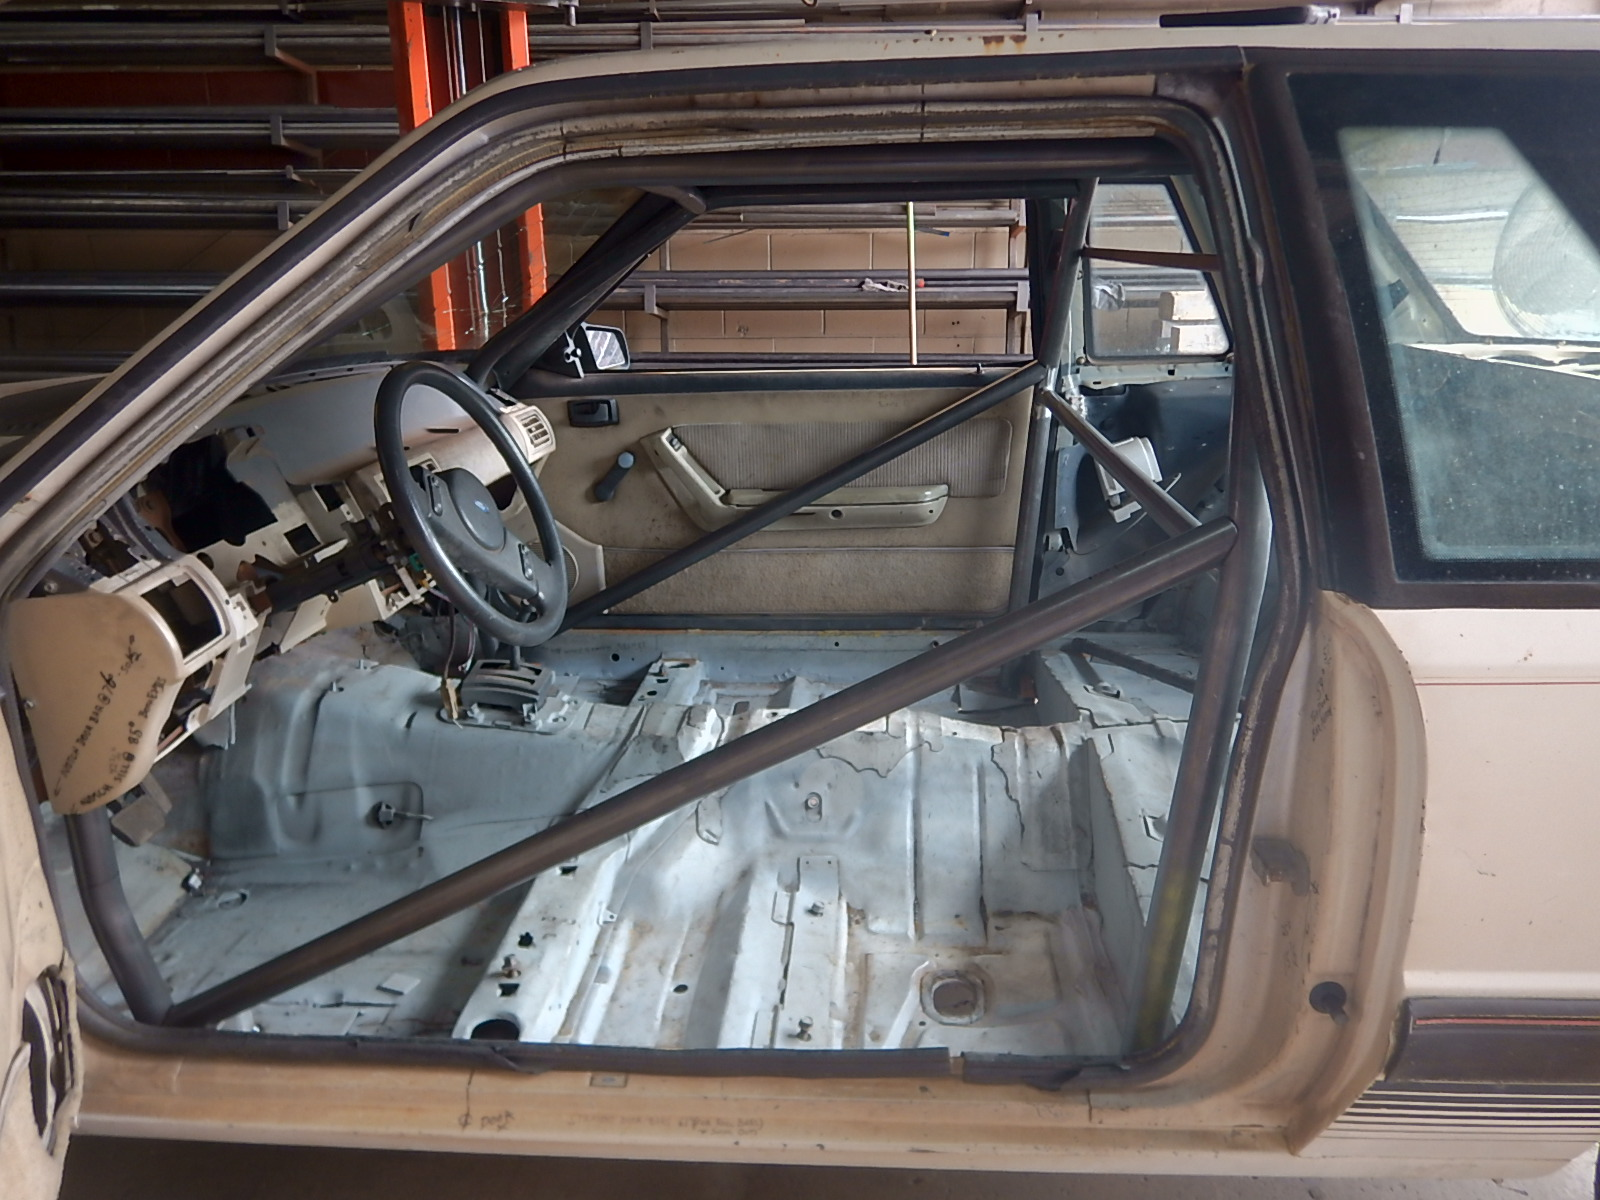 New Fox Sn95 Exact Fit 8pt Roll Cage Wild Rides